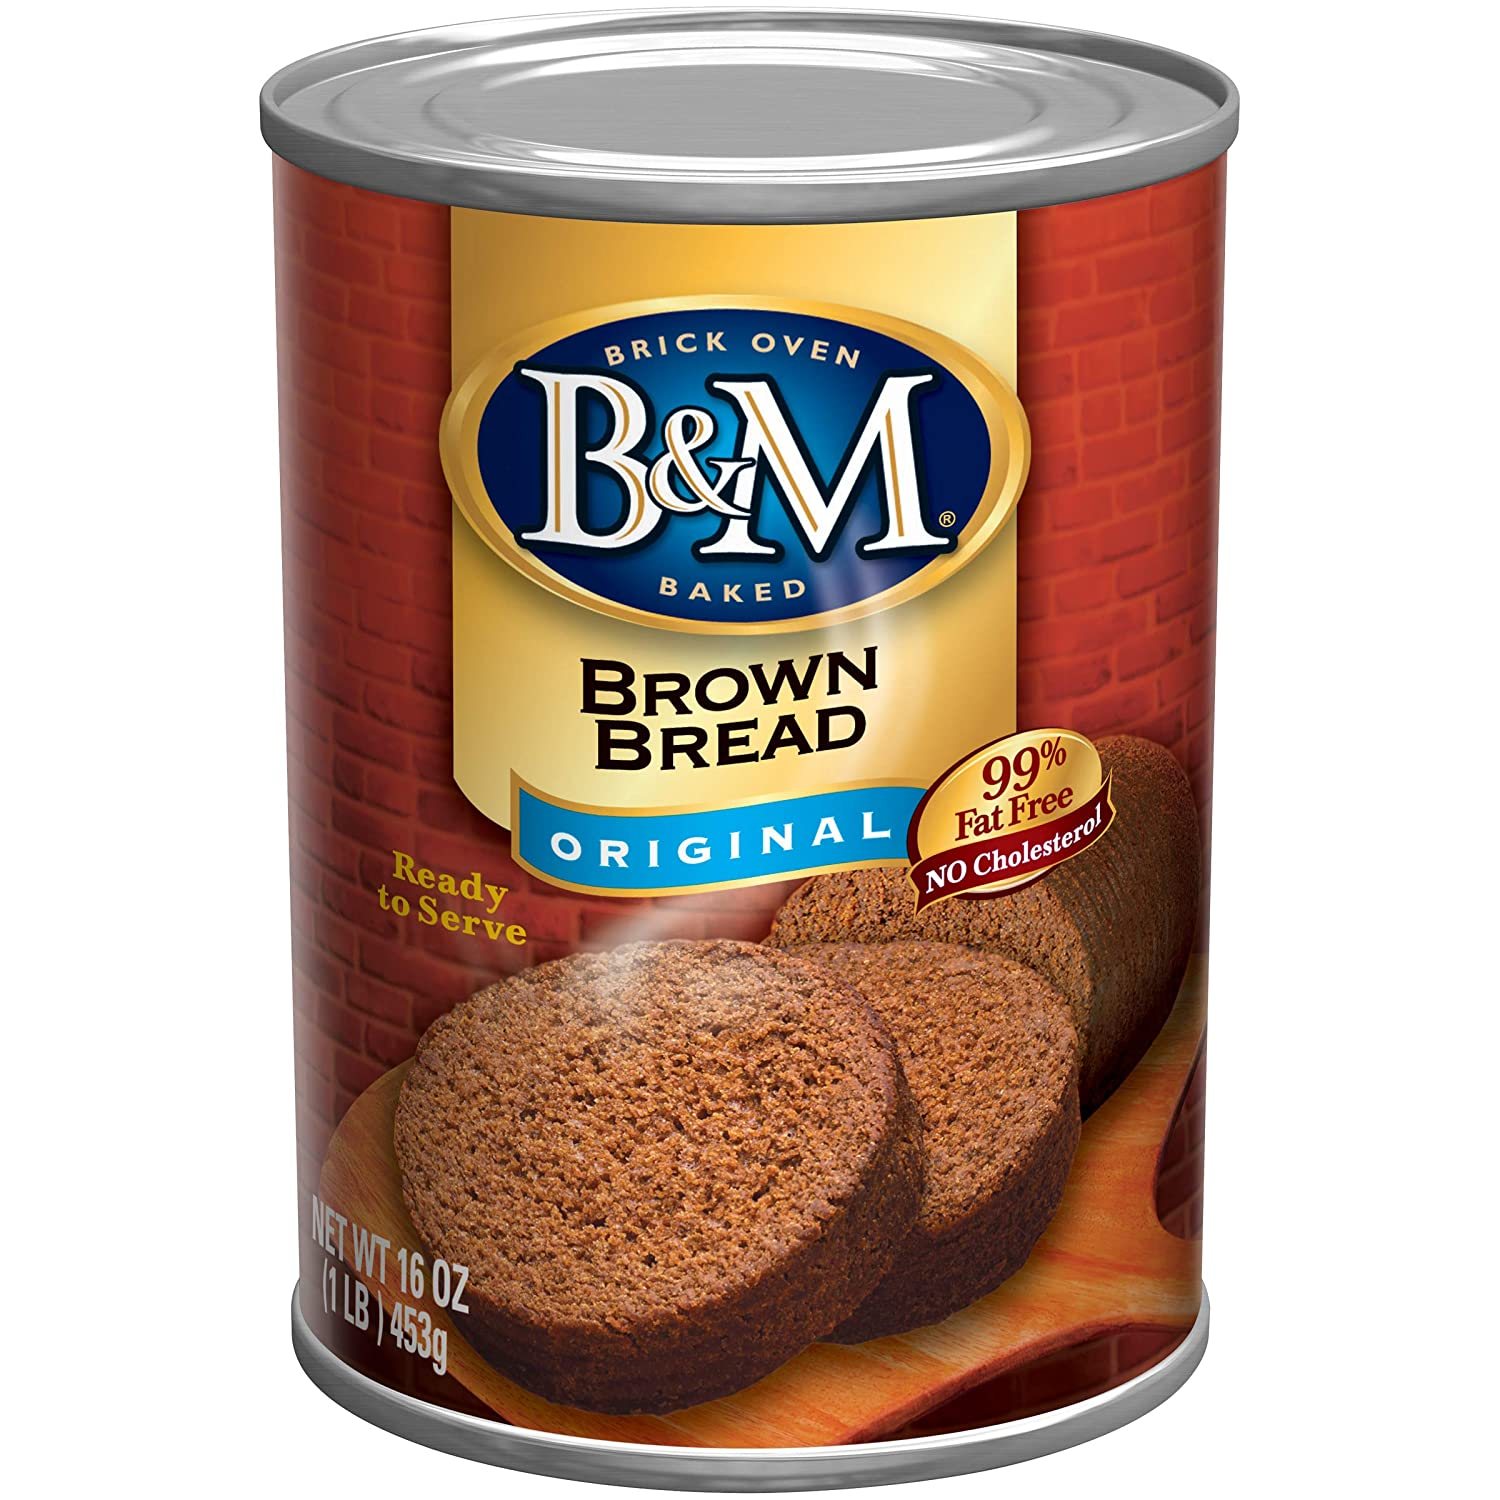 B & M Brown Bread, Original Flavor, 16 Ounce (Pack of 12) 81JuXwE2uWL